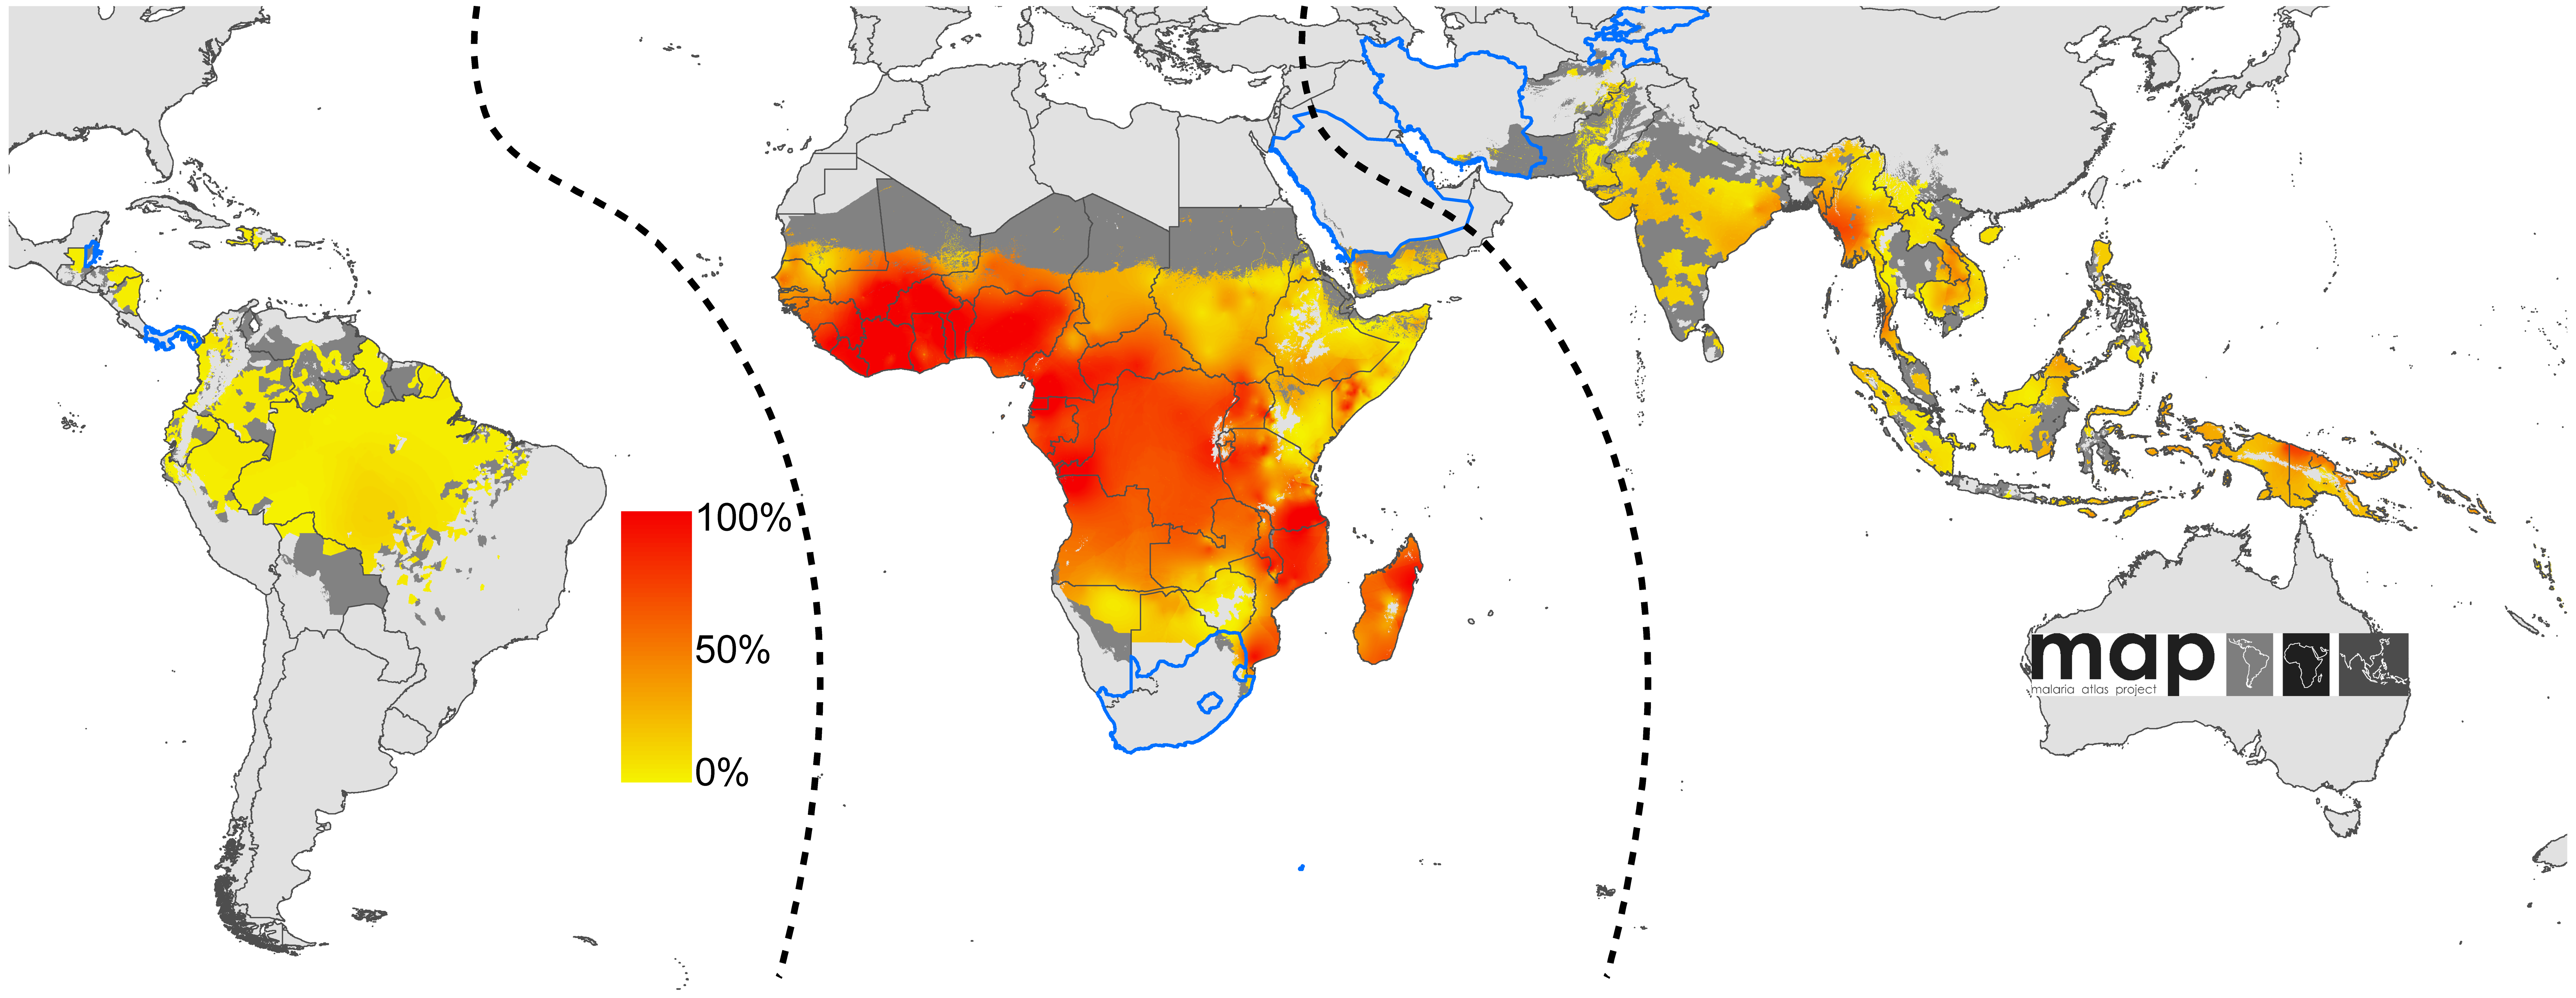 Global limits and endemicity of <i>P. falciparum</i> in 2007.